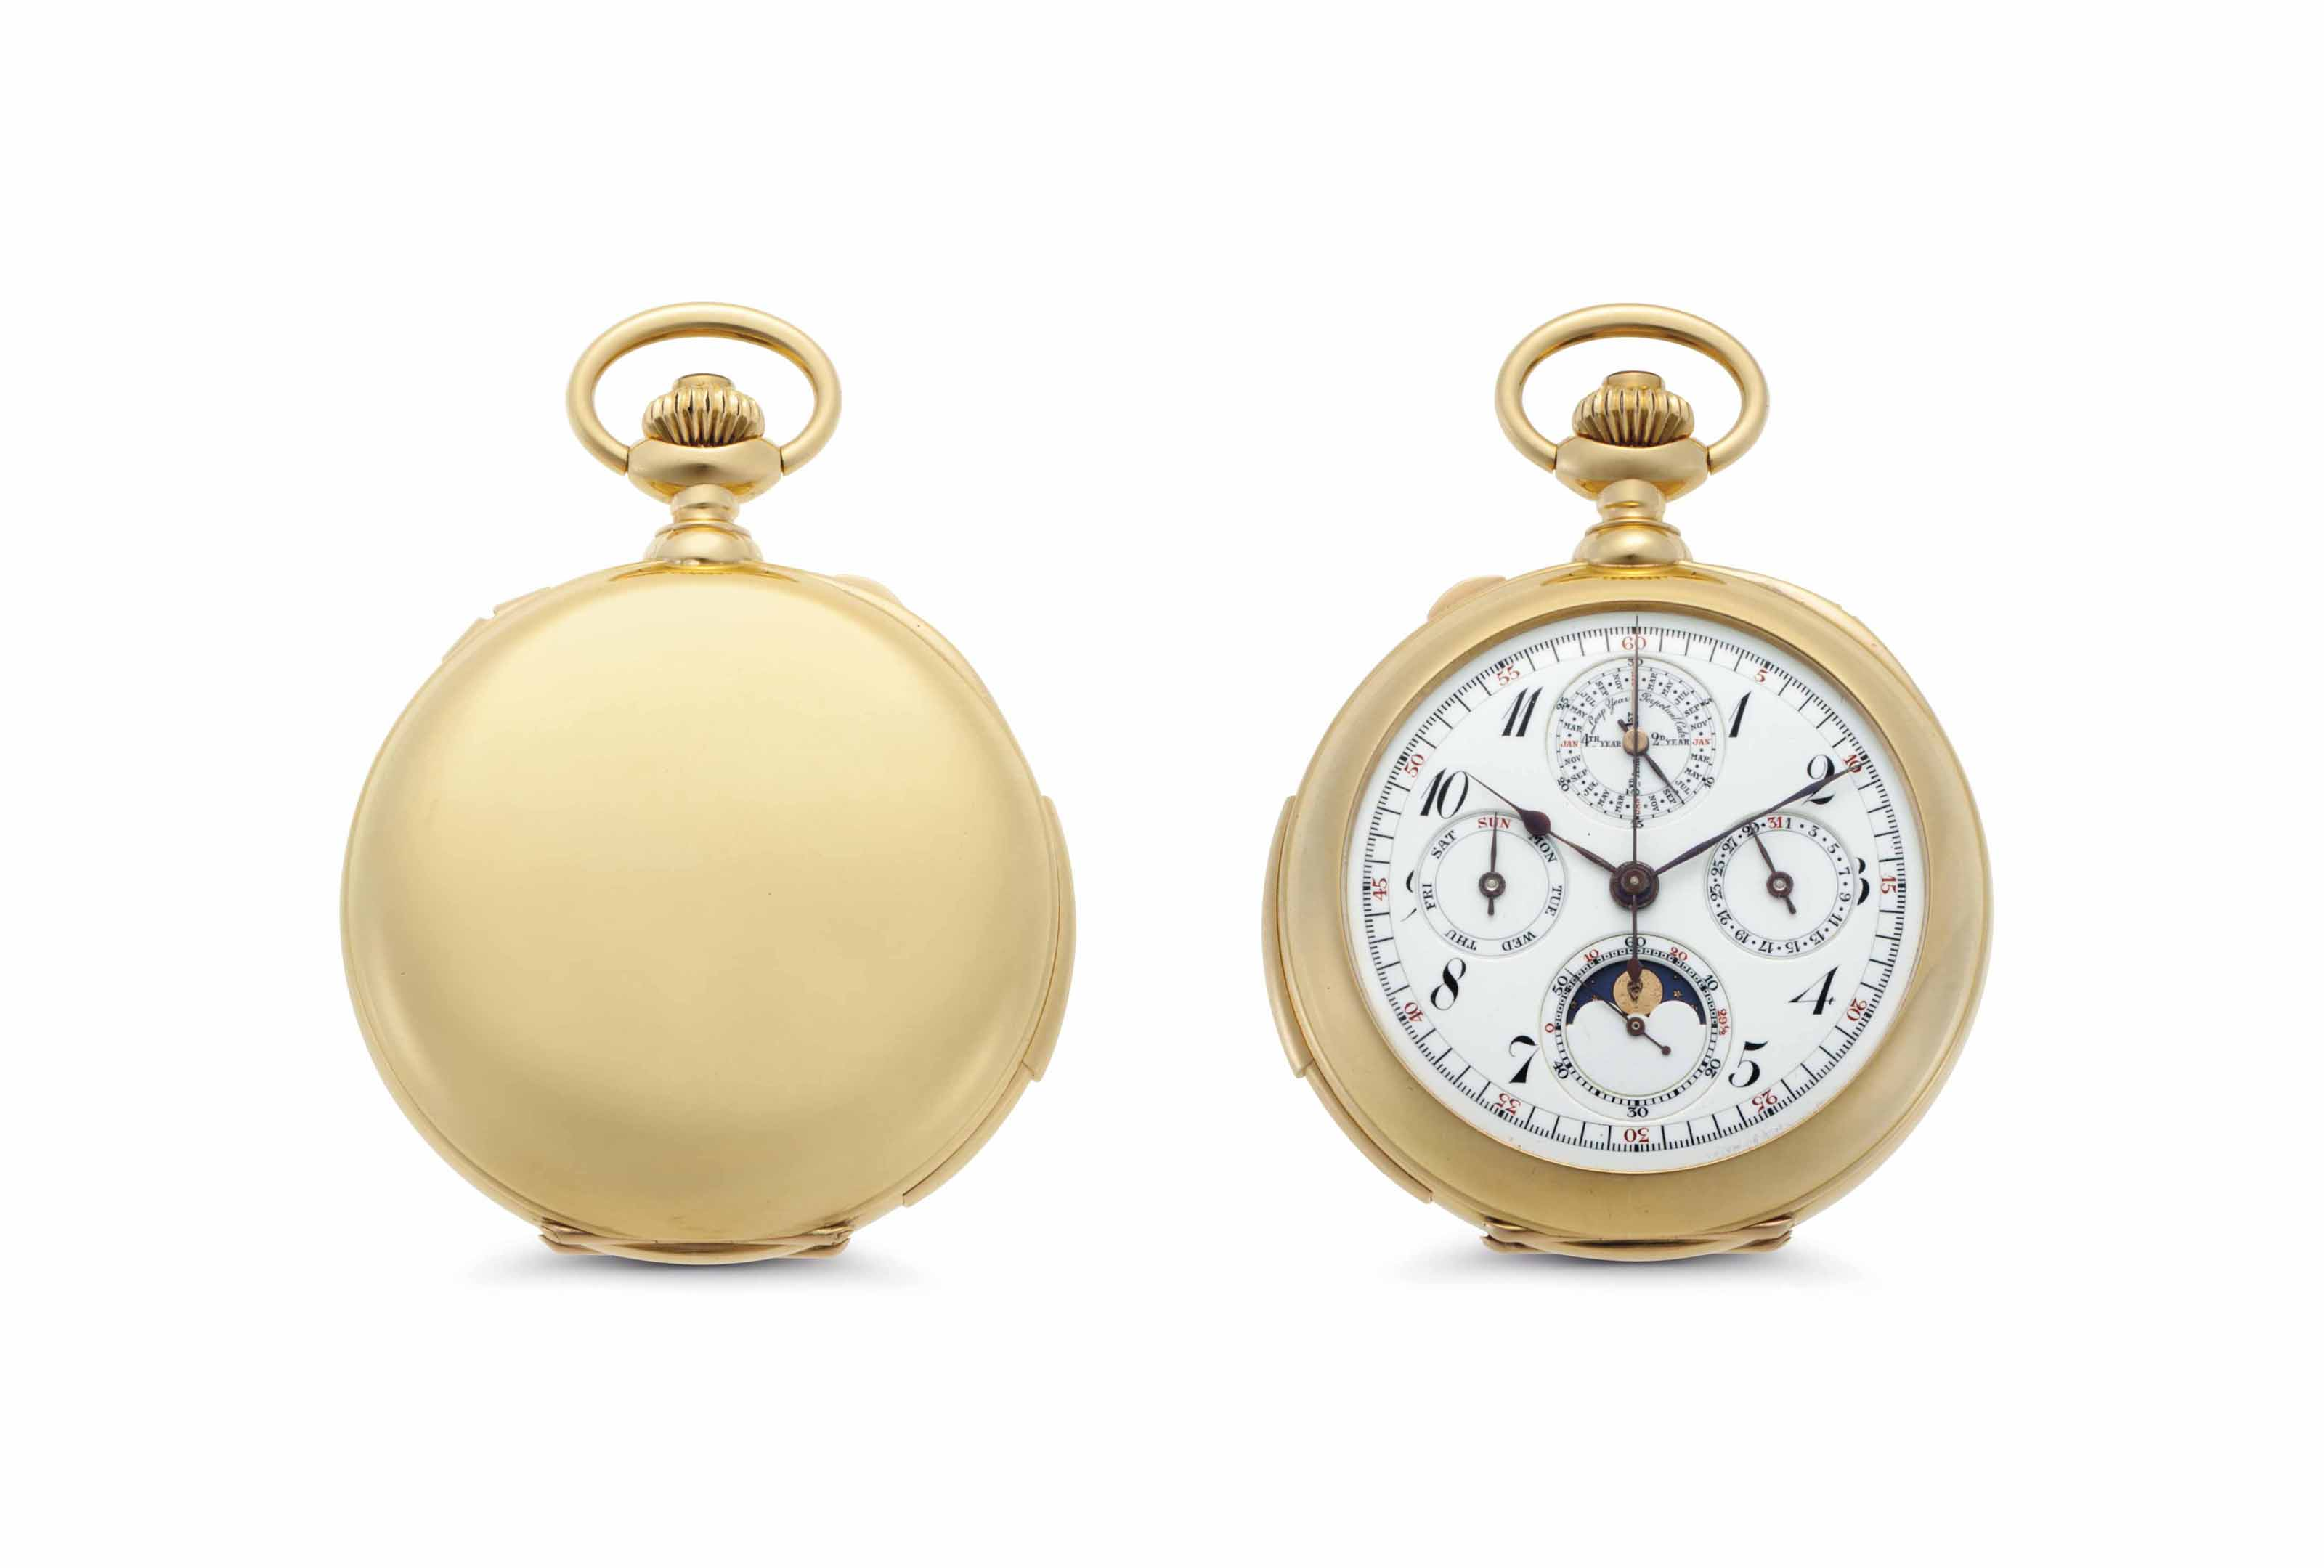 Meylan.  A Fine 18k Gold Minute Repeating Perpetual Calendar Openface Keyless Lever Split-Seconds Chronograph Watch